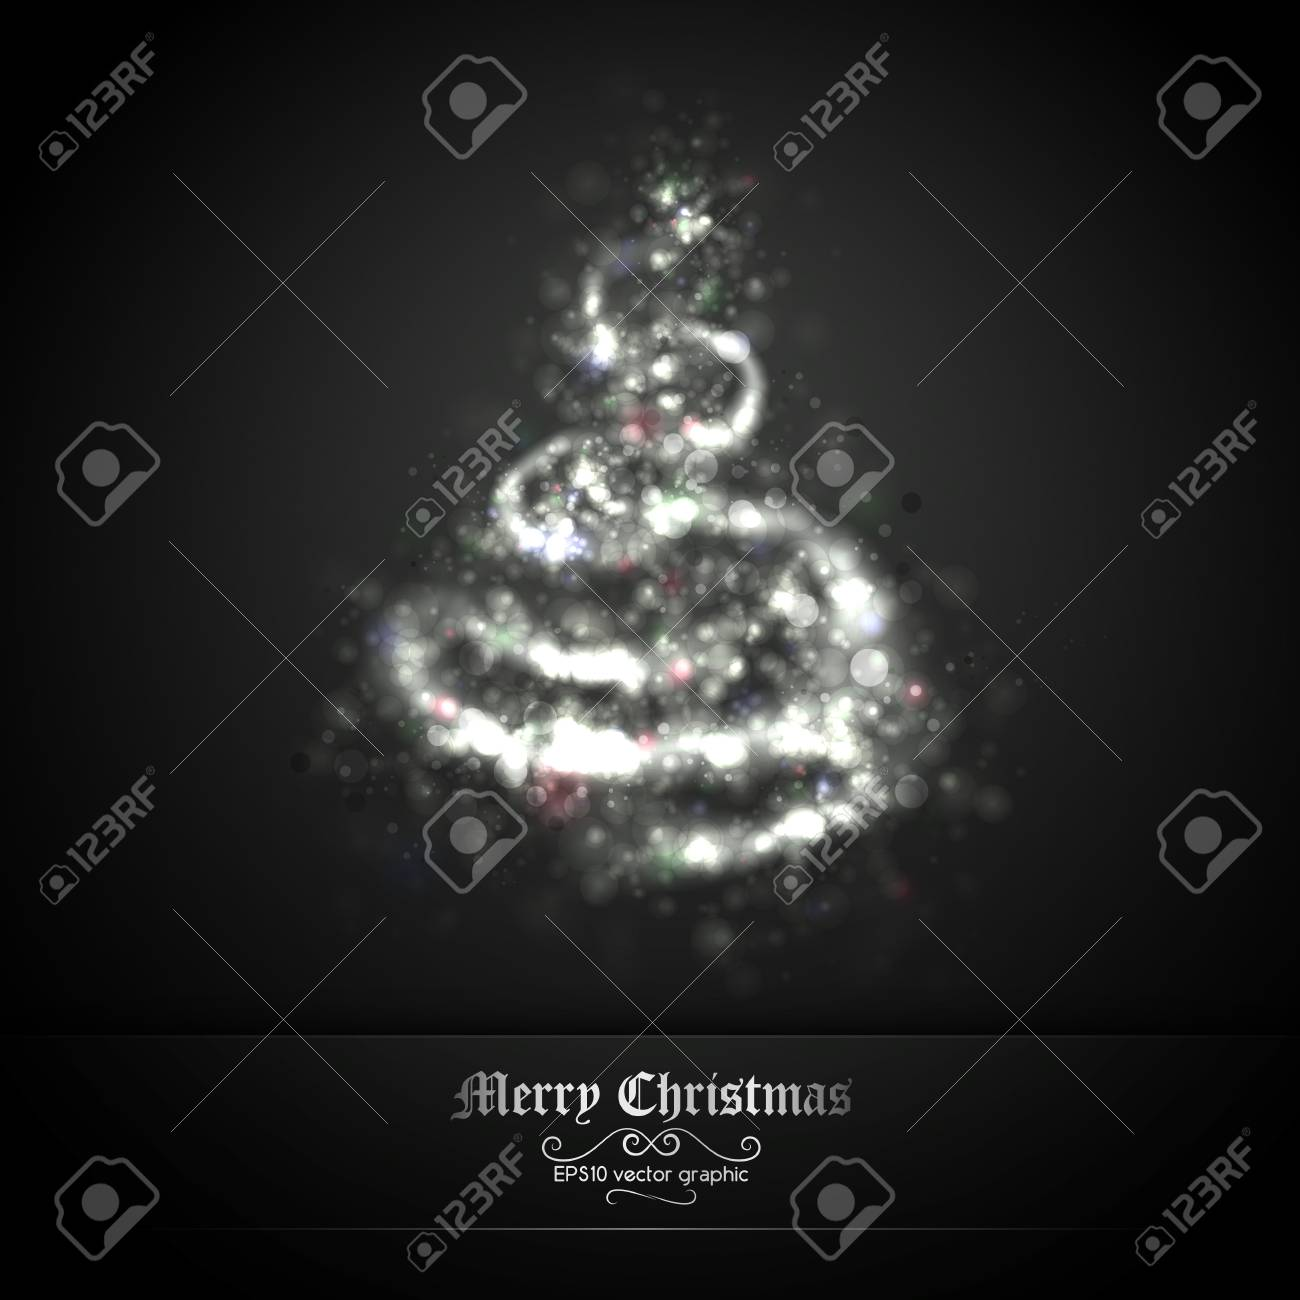 Dark Silver Christmas Greeting with Tree of Glittering Lights | EPS10 Graphic | Separate Layers Named Accordingly Stock Vector - 11331252